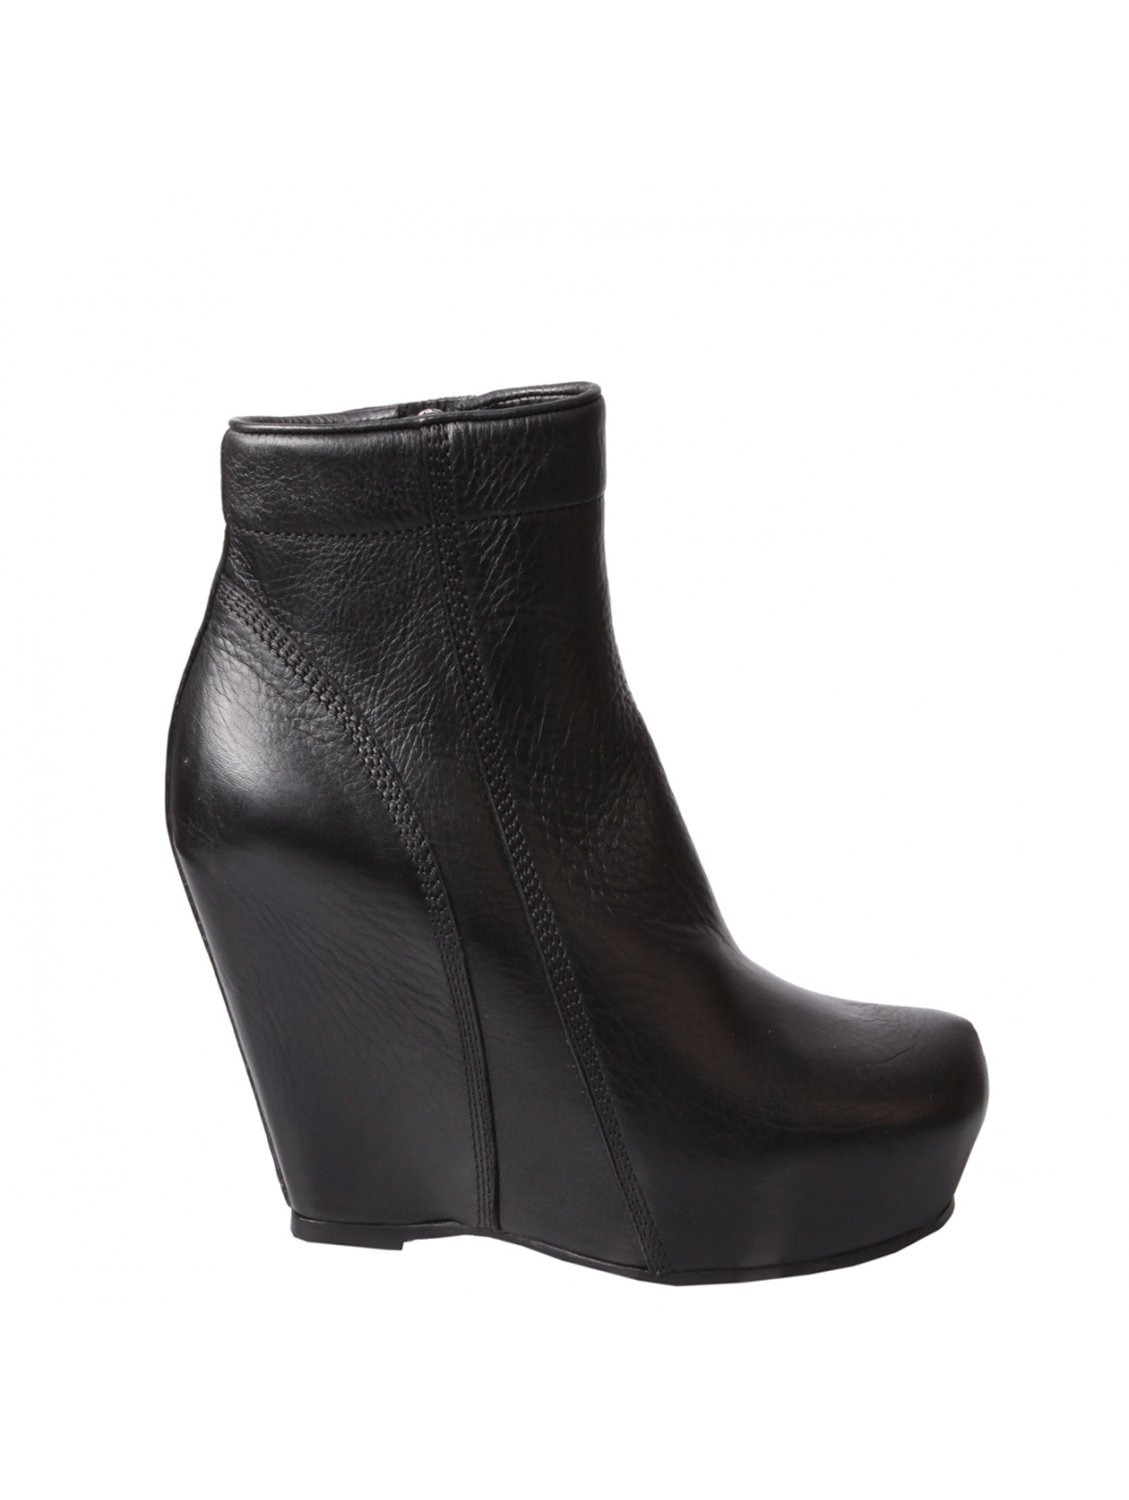 Black Leather Wedge Ankle Boots - Cr Boot